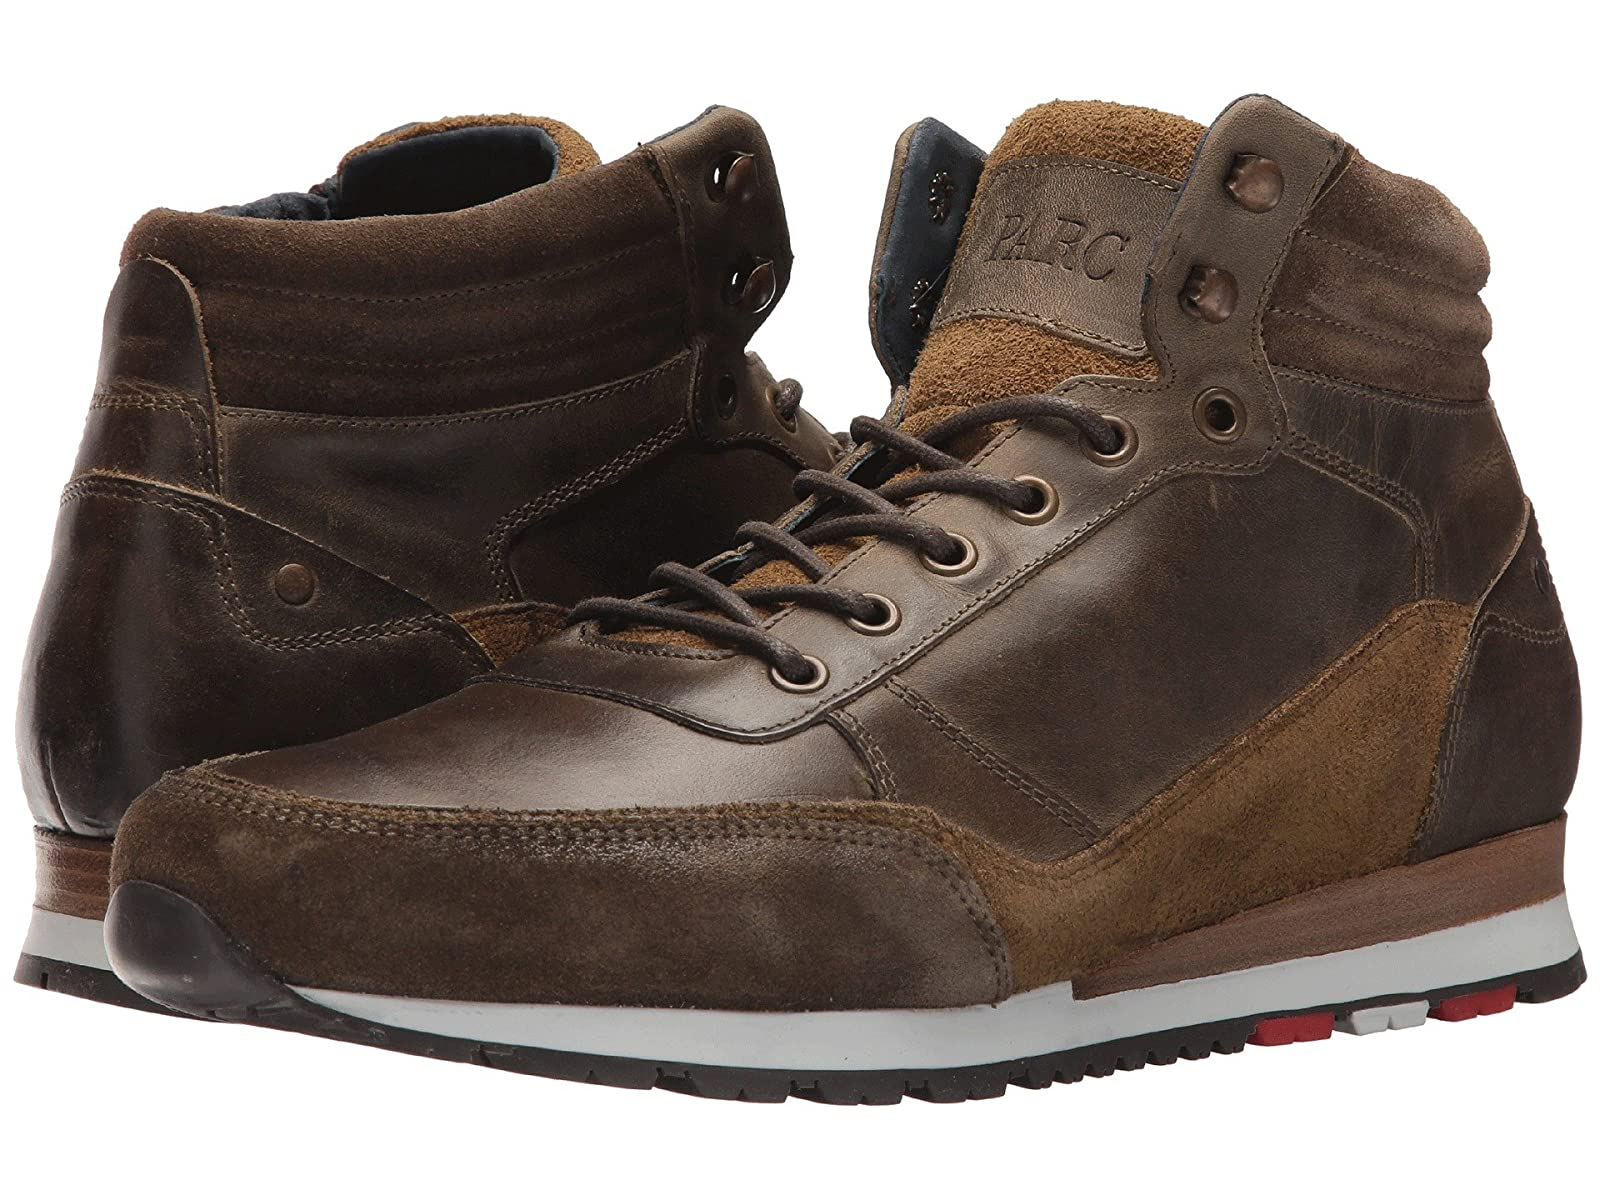 PARC City Boot HumberAtmospheric grades have affordable shoes